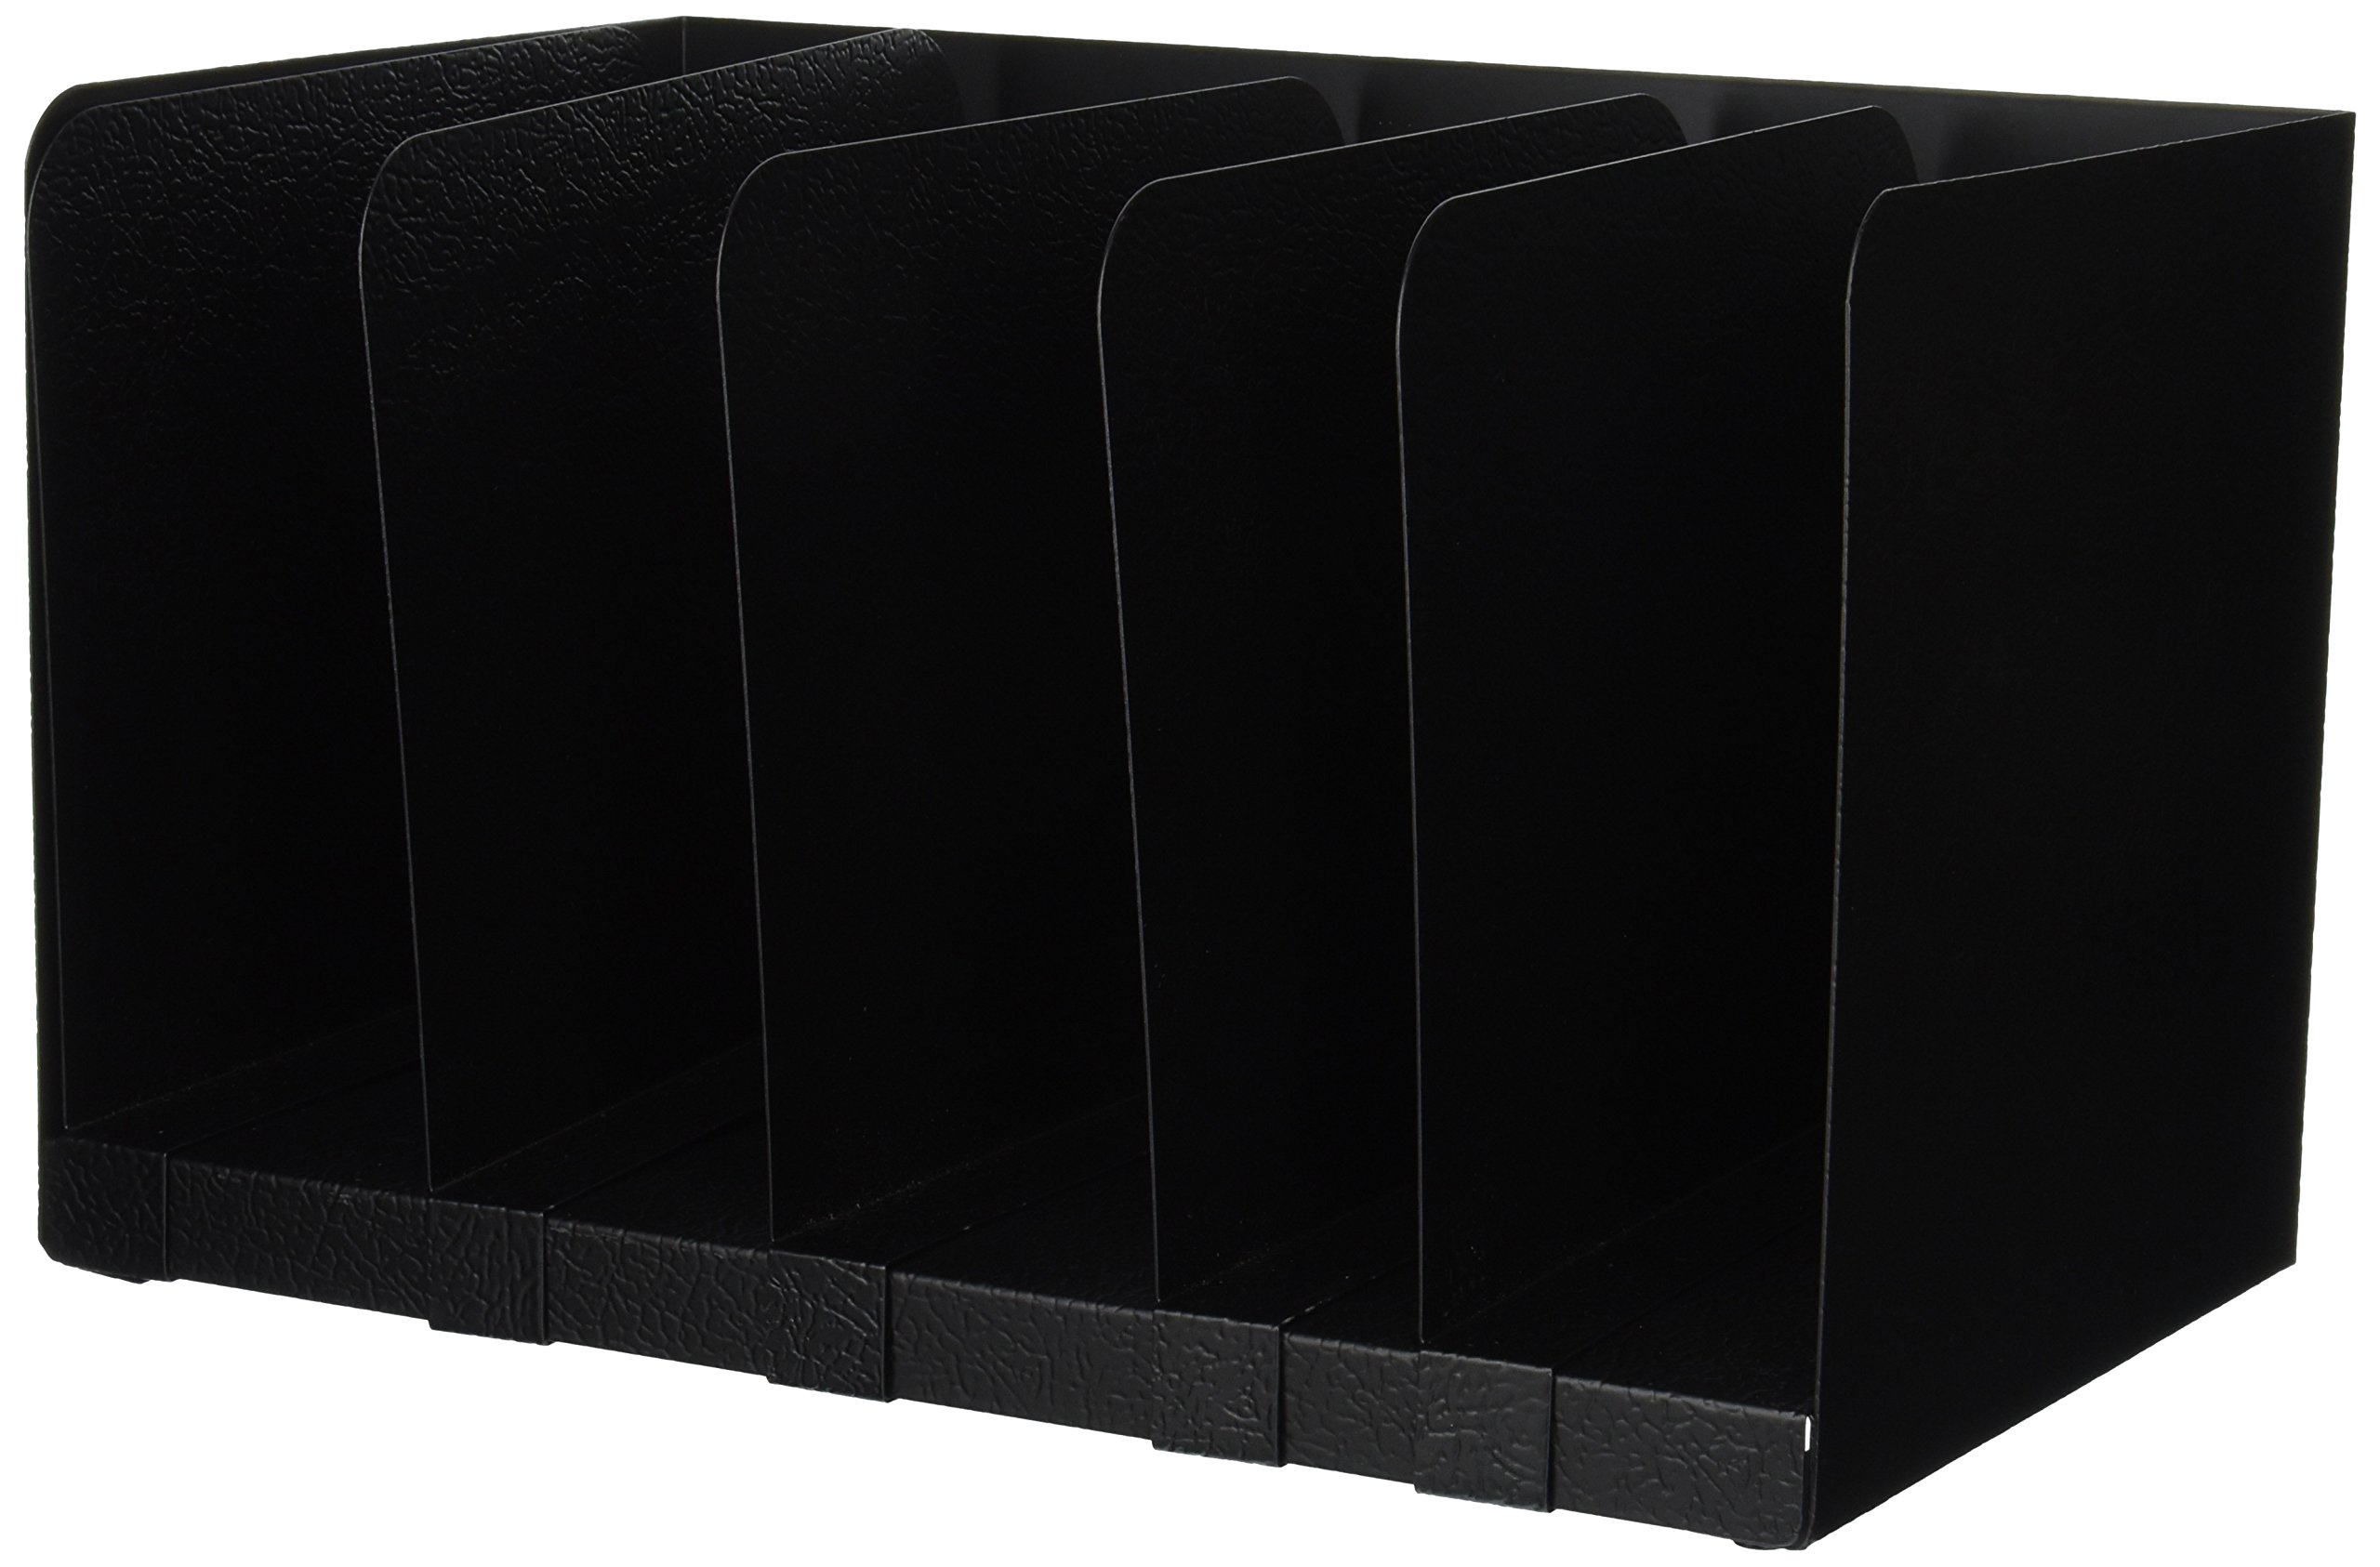 Buddy Products Adjustable Book Rack, Steel, 9.25 x 9.25 x 15 Inches, Black (0570-4) by Buddy Products